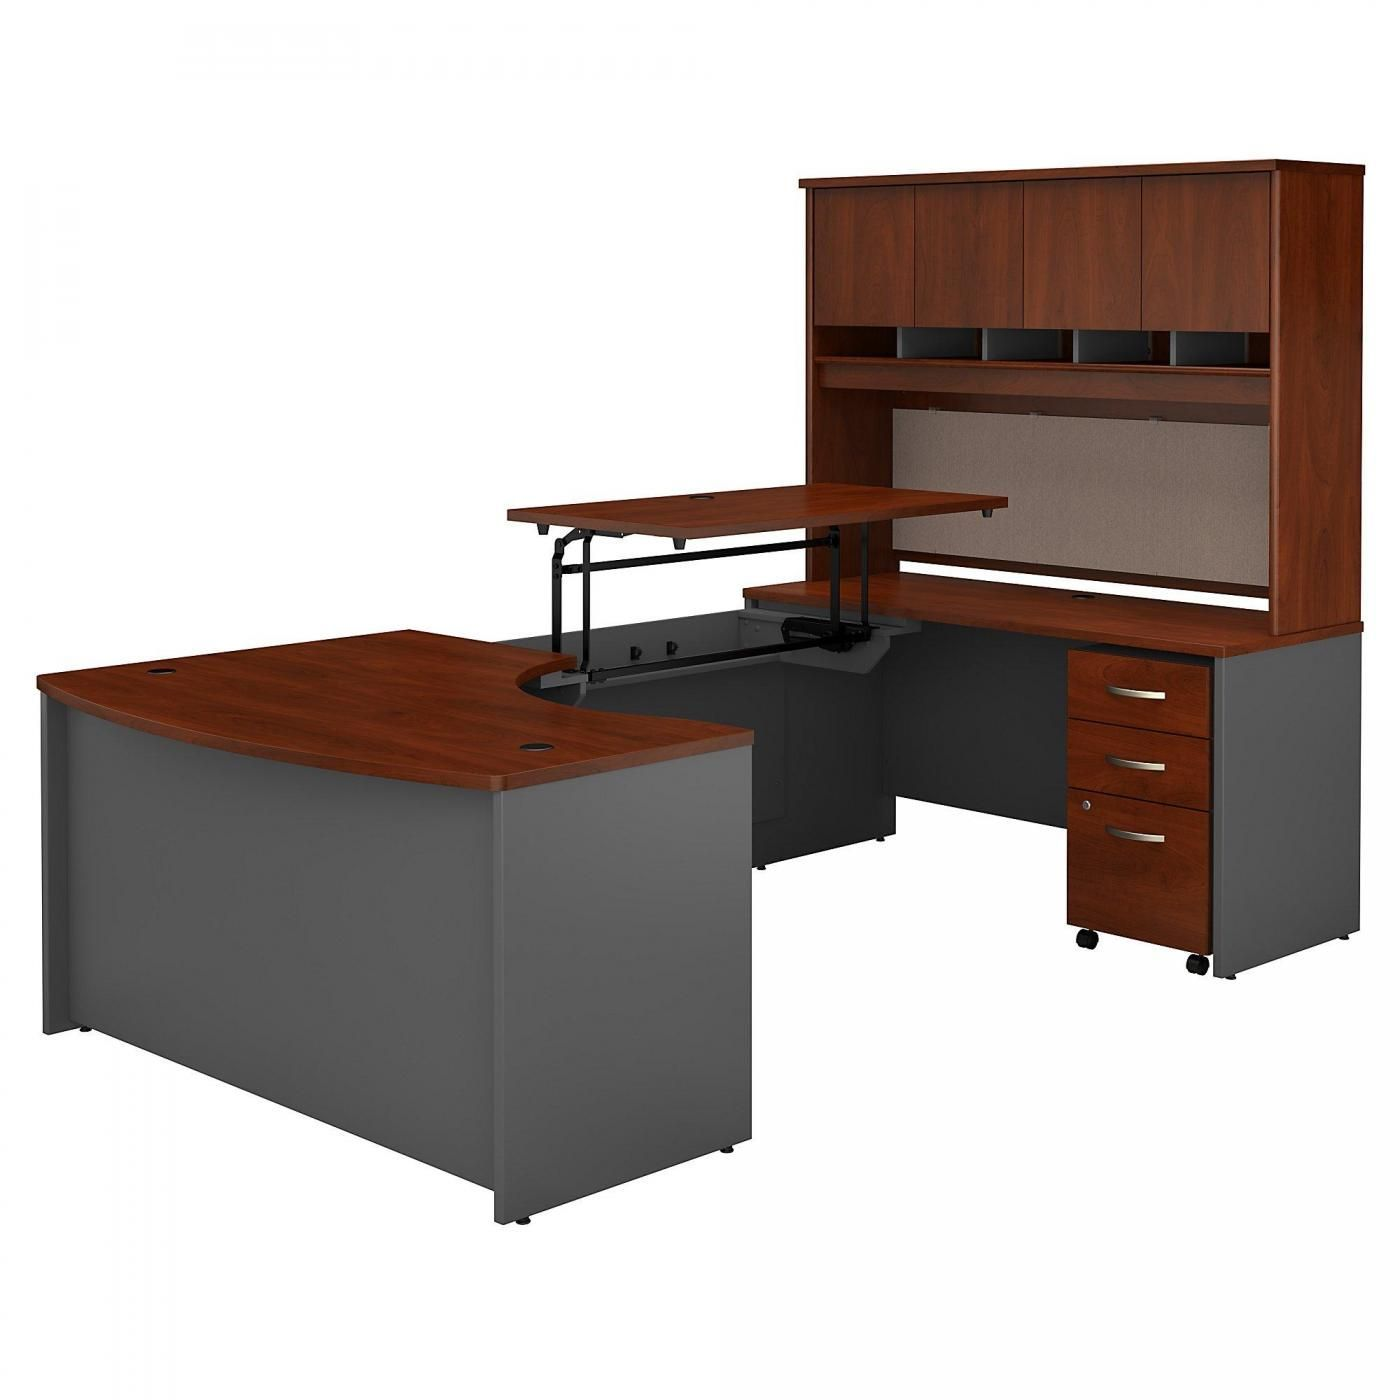 <font color=#c60><b>BUSH BUSINESS FURNITURE SERIES C 60W X 43D LEFT HAND 3 POSITION SIT TO STAND U SHAPED DESK WITH HUTCH AND MOBILE FILE CABINET. FREE SHIPPING. VIDEO:</font></b></font></b>